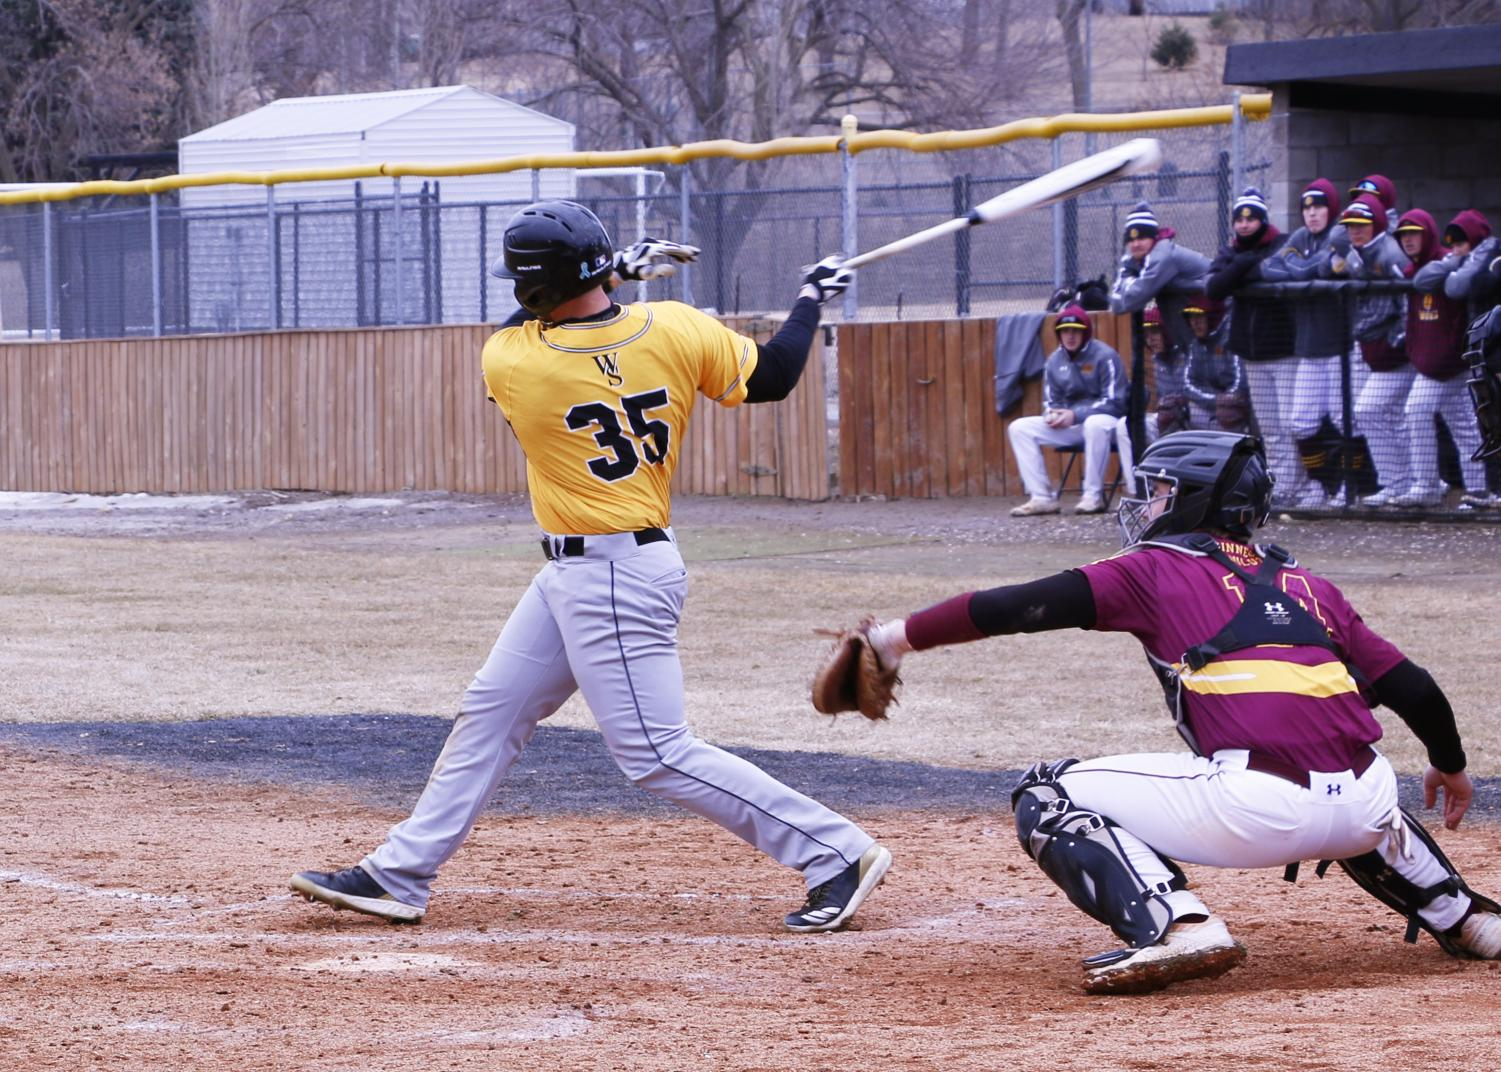 Junior Bryce Bisenius makes contact with a pitch against the Minnesota Duluth Bulldogs on Saturday.